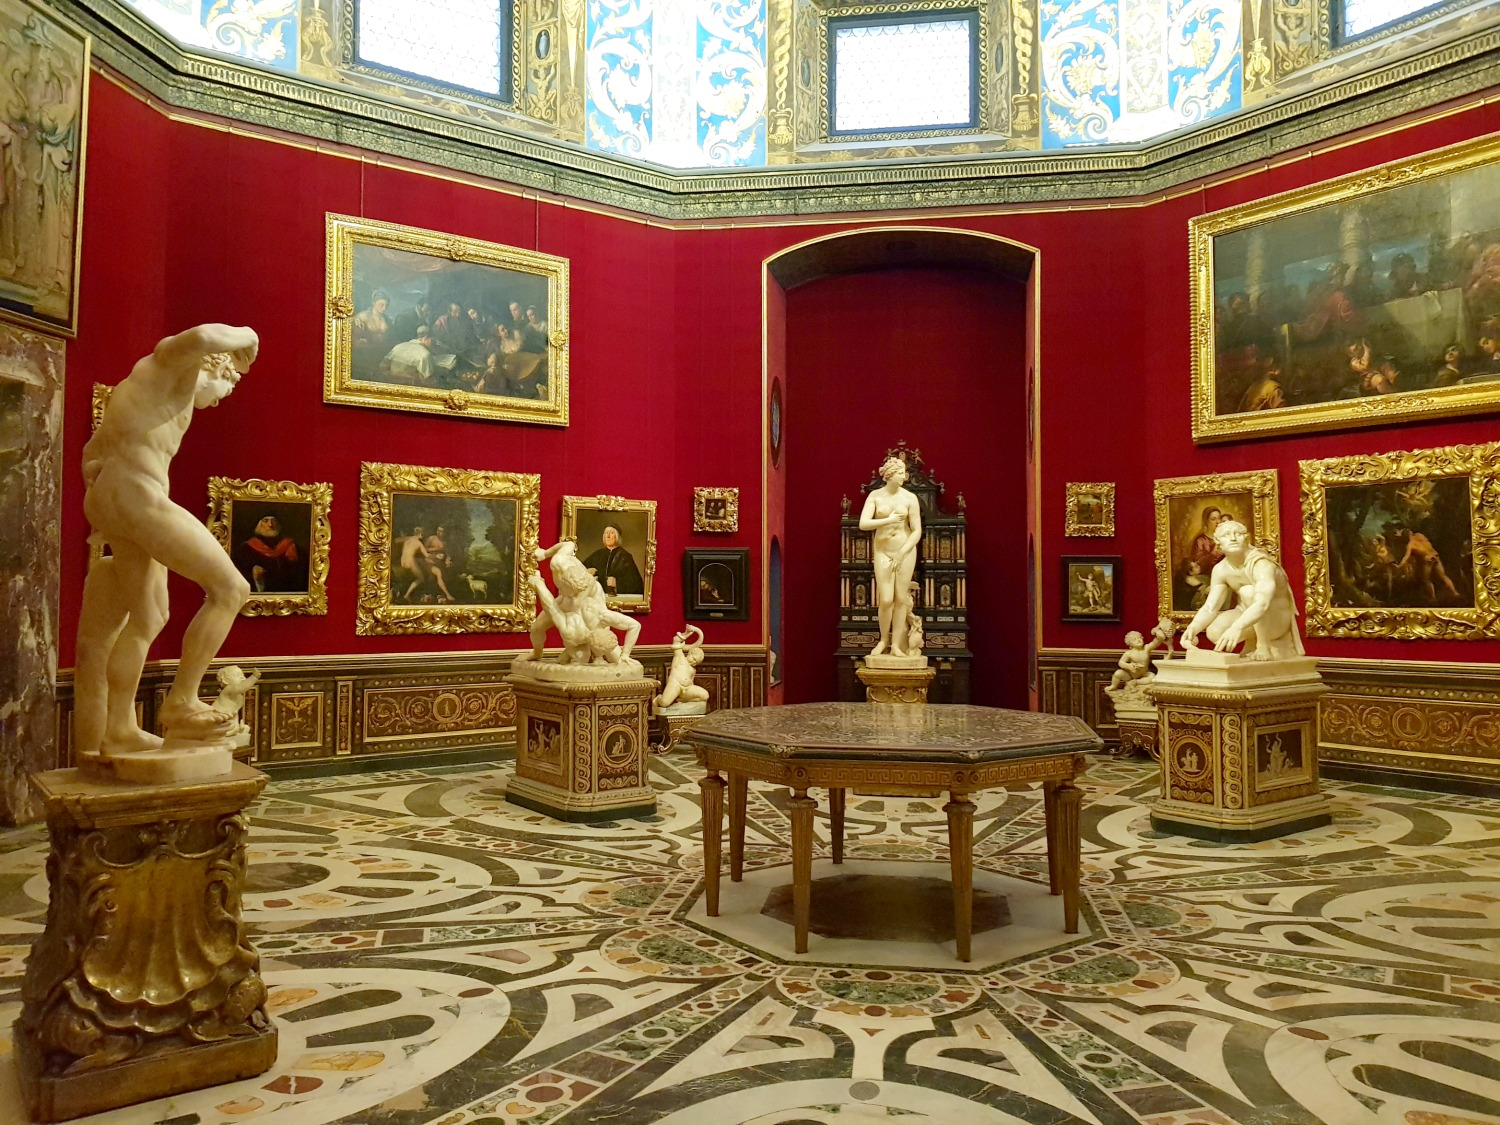 The tribuna of the Medici in the Uffizi gallery in Florence, Italy - my Uffizi tour with kids and gelato making day in Florence